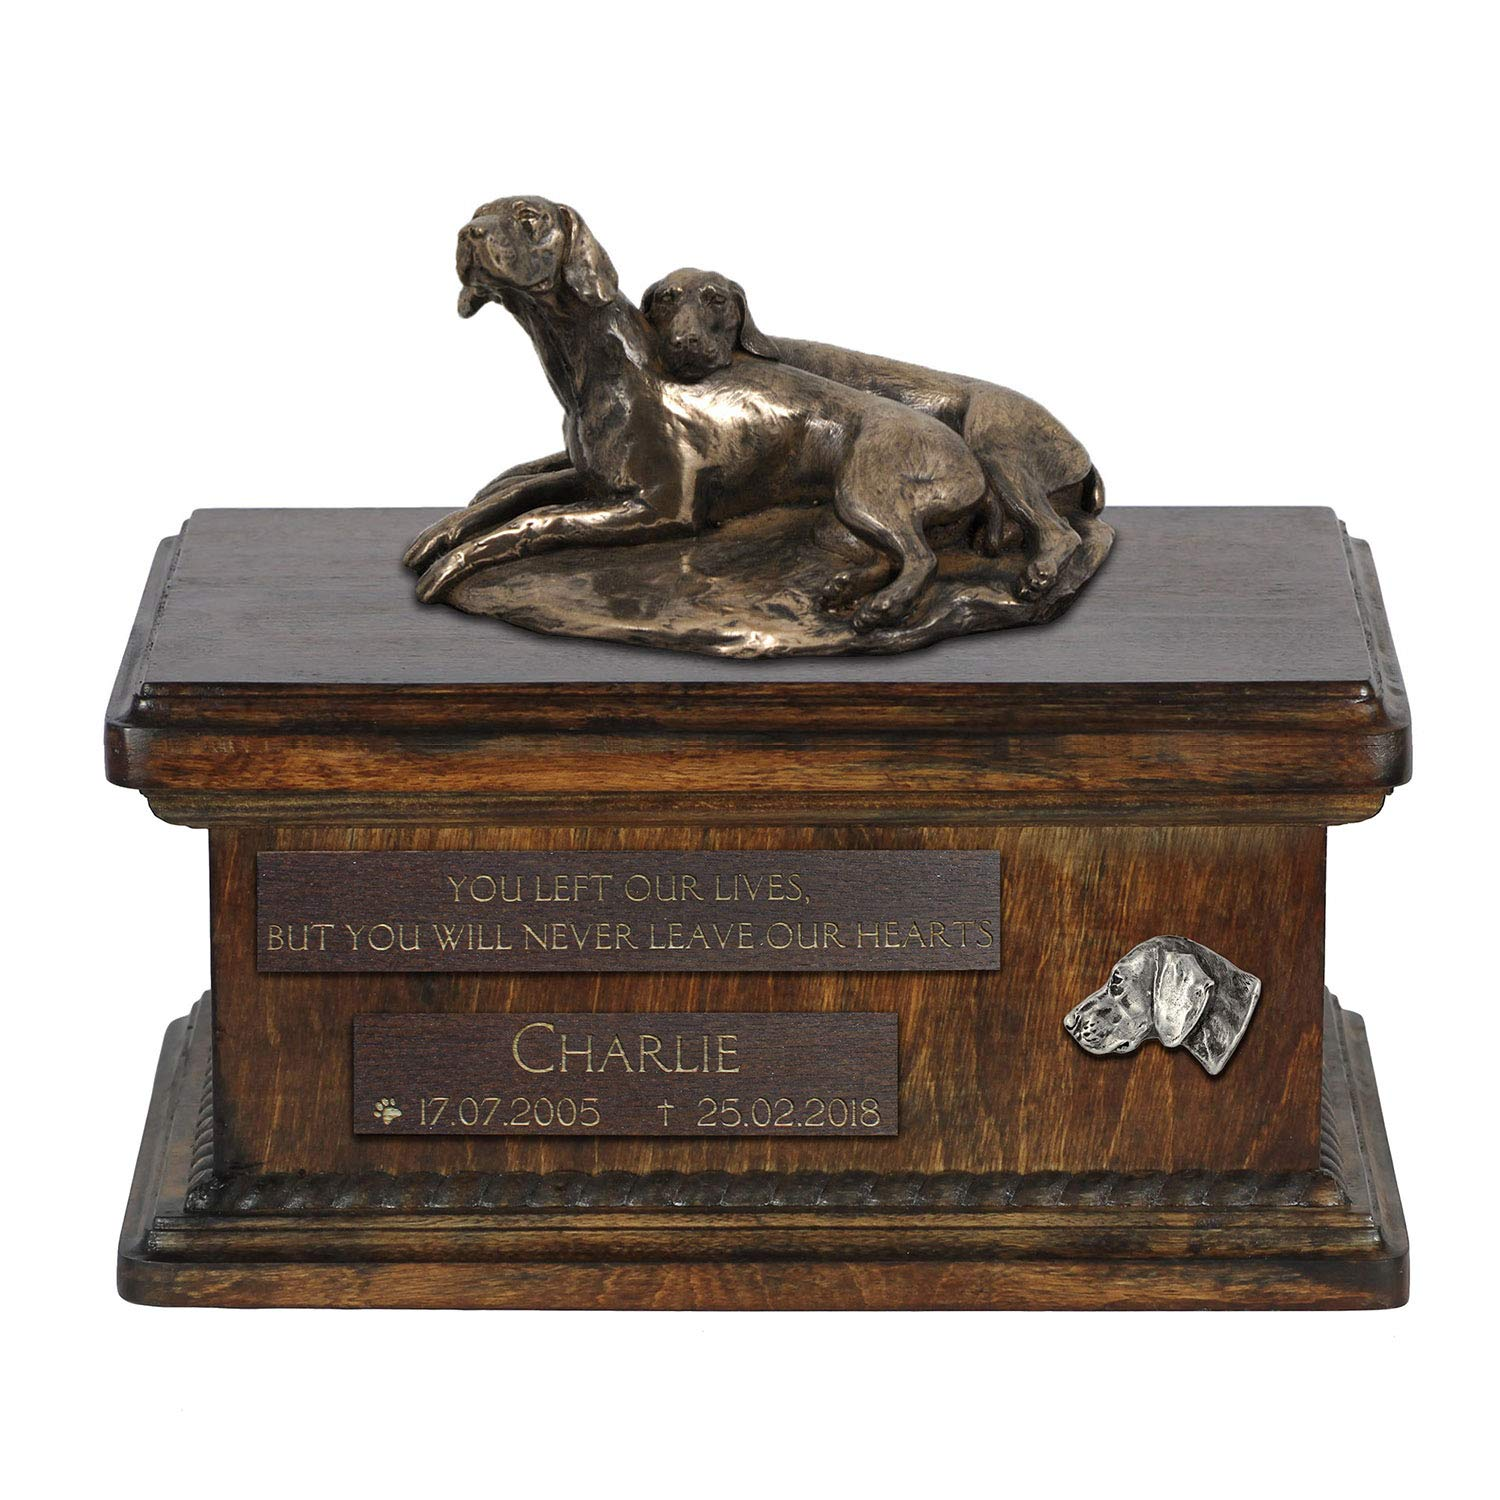 Weimaraner, Urn for Dog Ashes Memorial with Statue, Pet's Name and Quote ArtDog Personalized